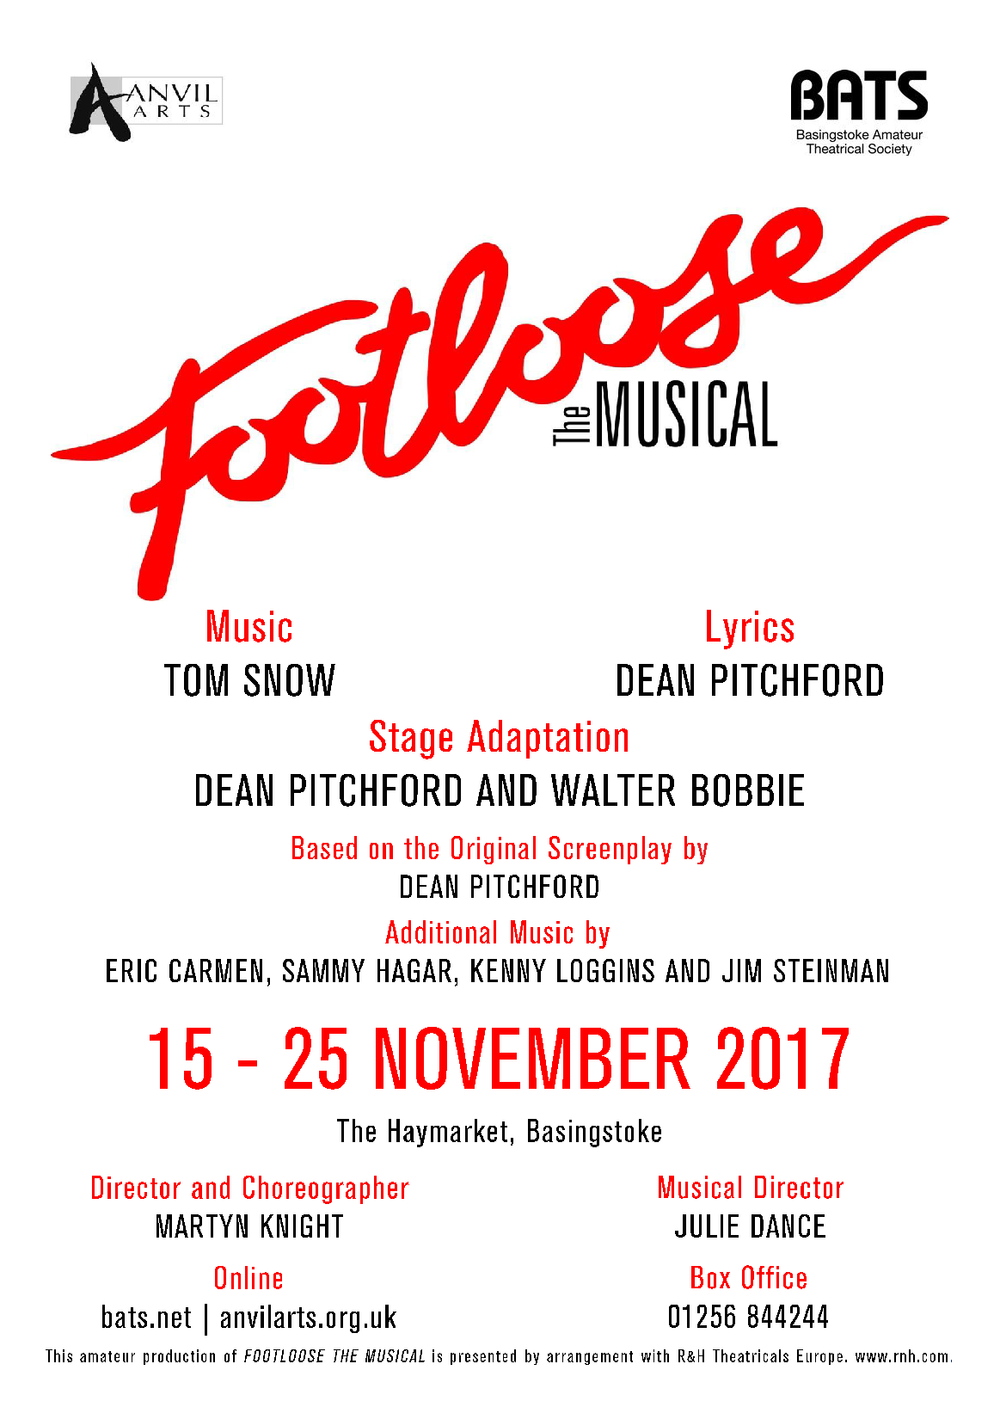 BATS-footloose-poster-nov-2017